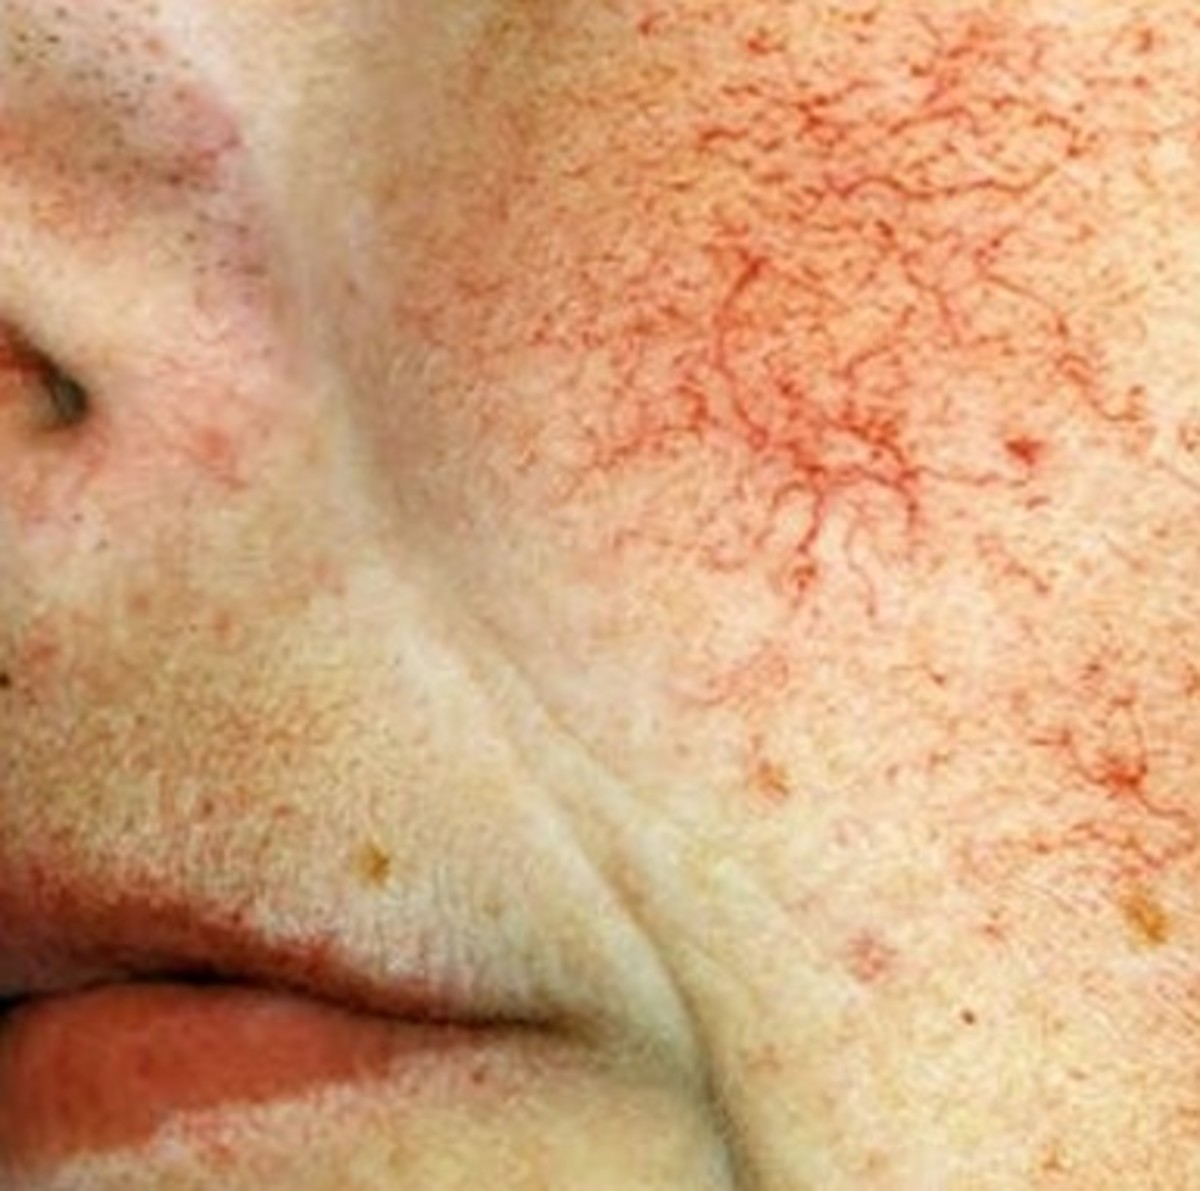 Telangiectasia - Pictures, Symptoms, Causes, Treatment